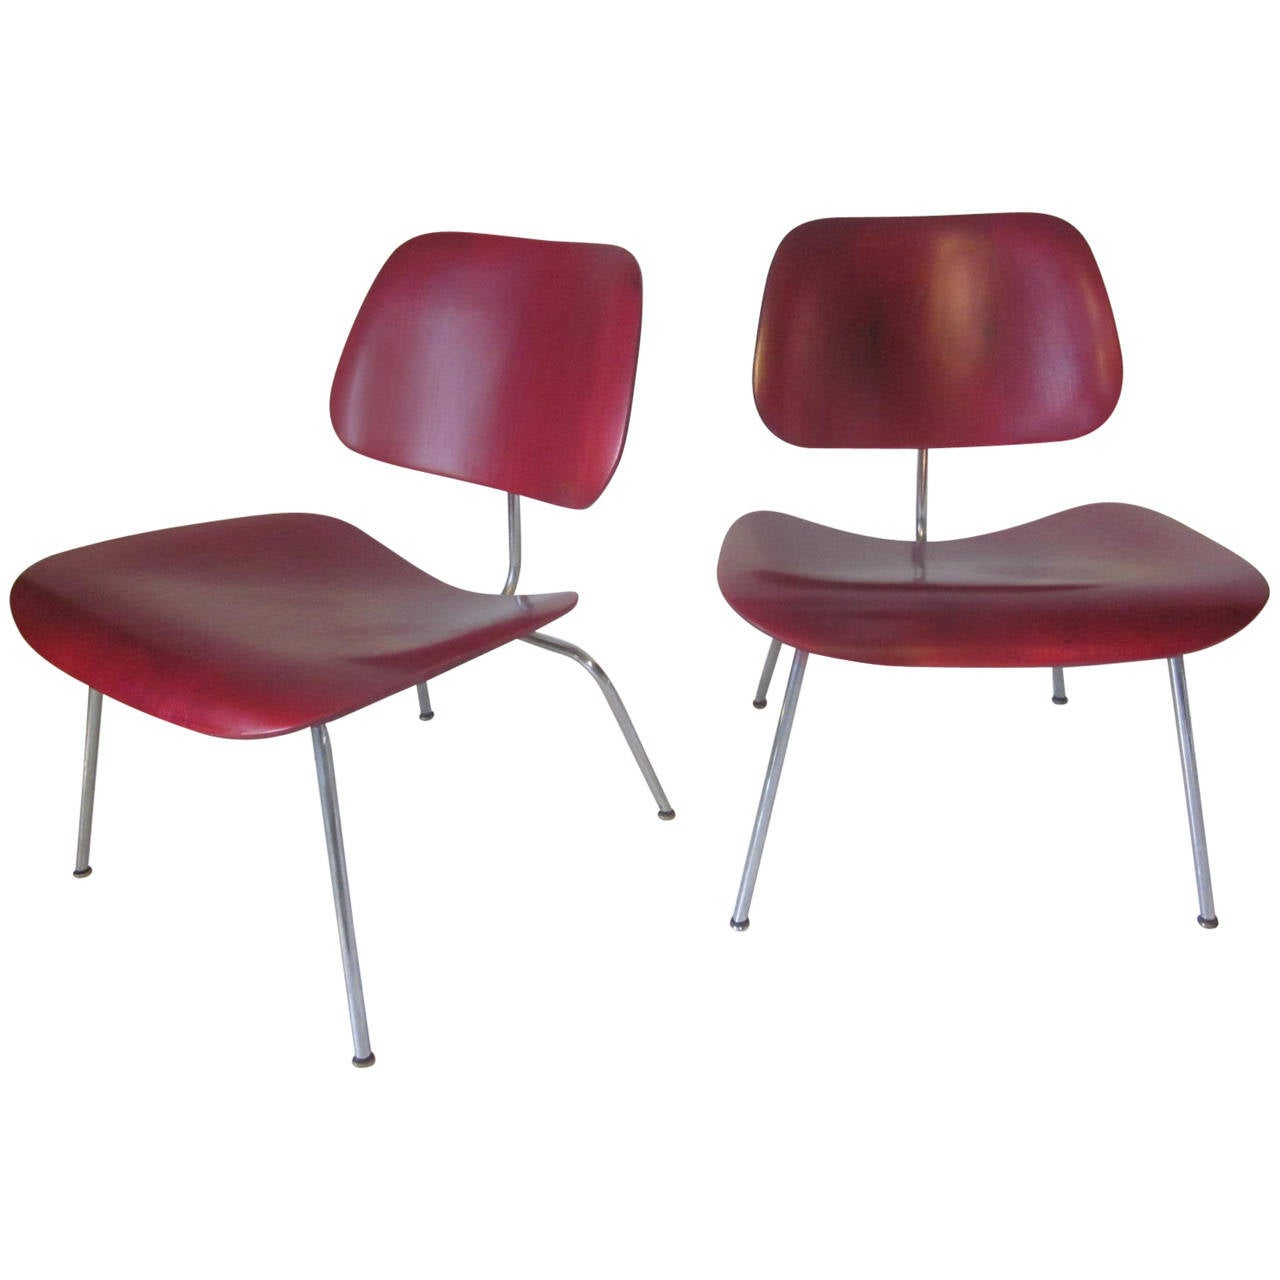 this eames lcm lounge chairs is no longer available